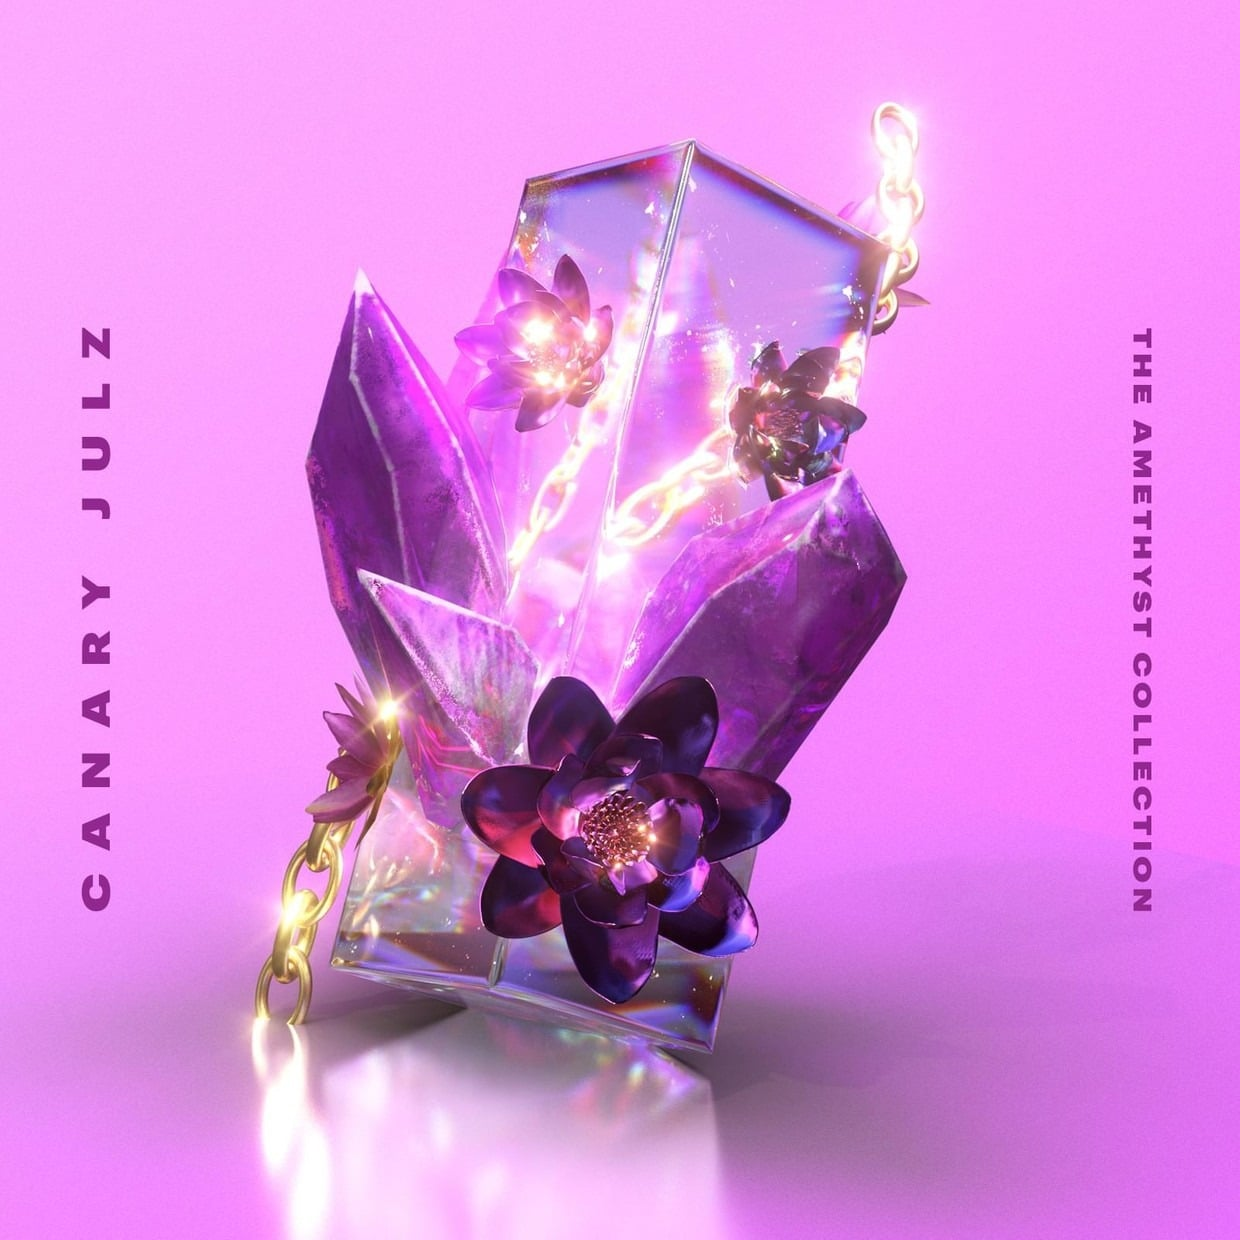 CanaryWhatAreWe - The Amethyst Collection (MIDI Collection)